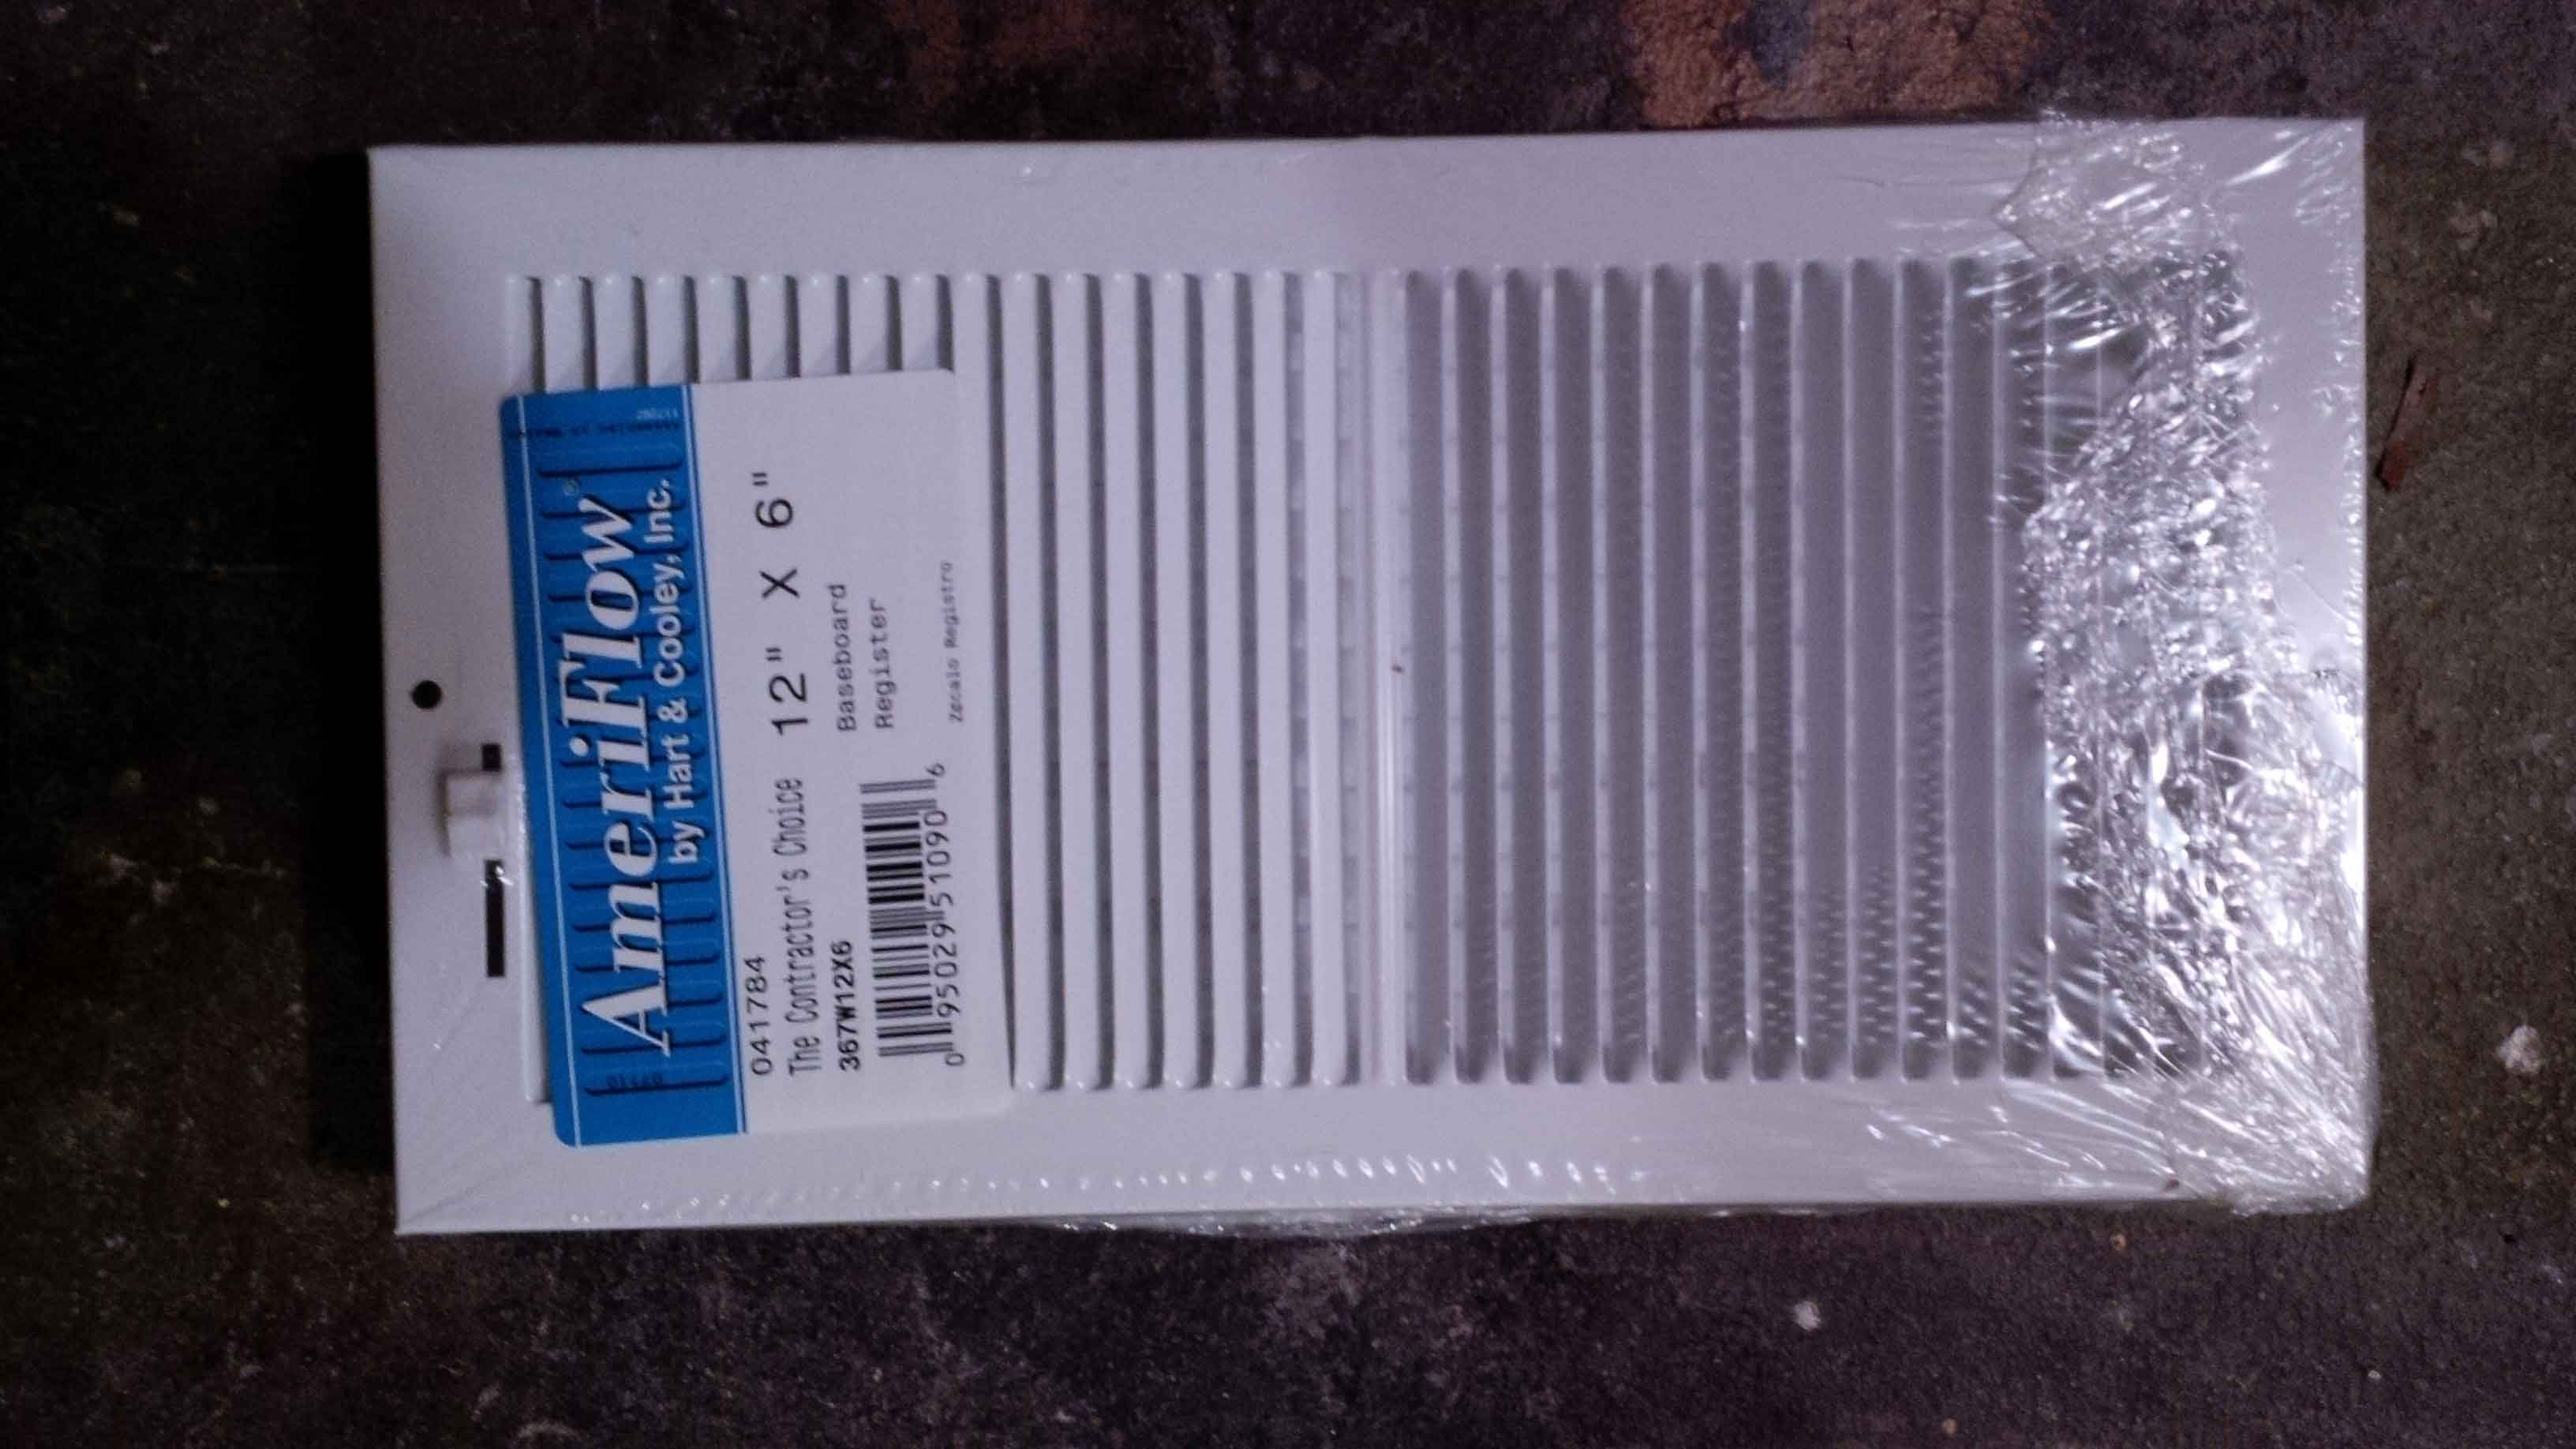 REGISTER 12 X 6 AND 2 CEILING SIDEWALL DIFFUSERS 14 X 8 eBay #1C4073